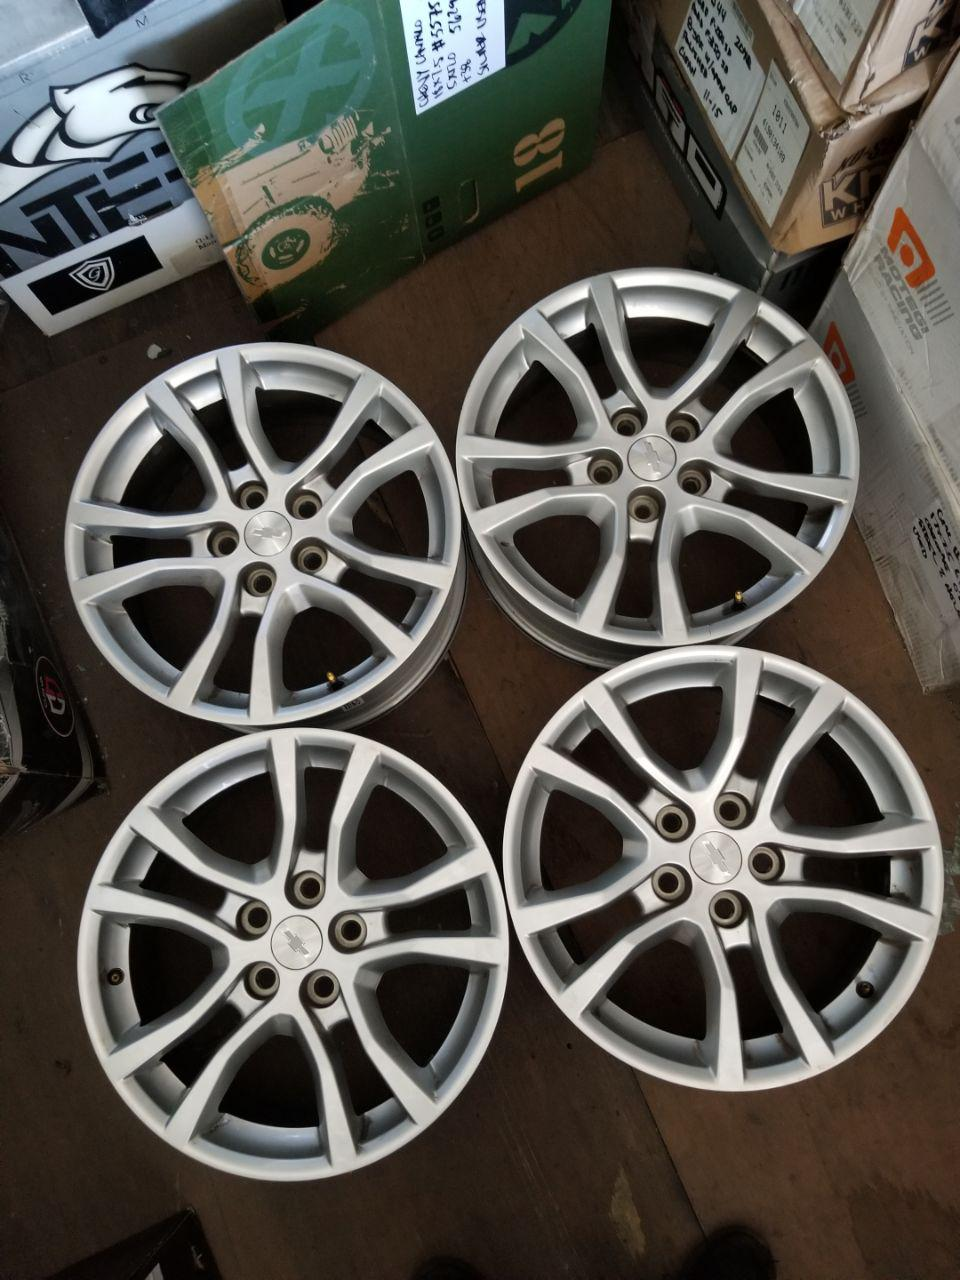 - OEM WHEELS - 2013-2015 GM CAMARO 18x7.5 5 SPLIT SPOKE Hollander #5575/5629 /  USED